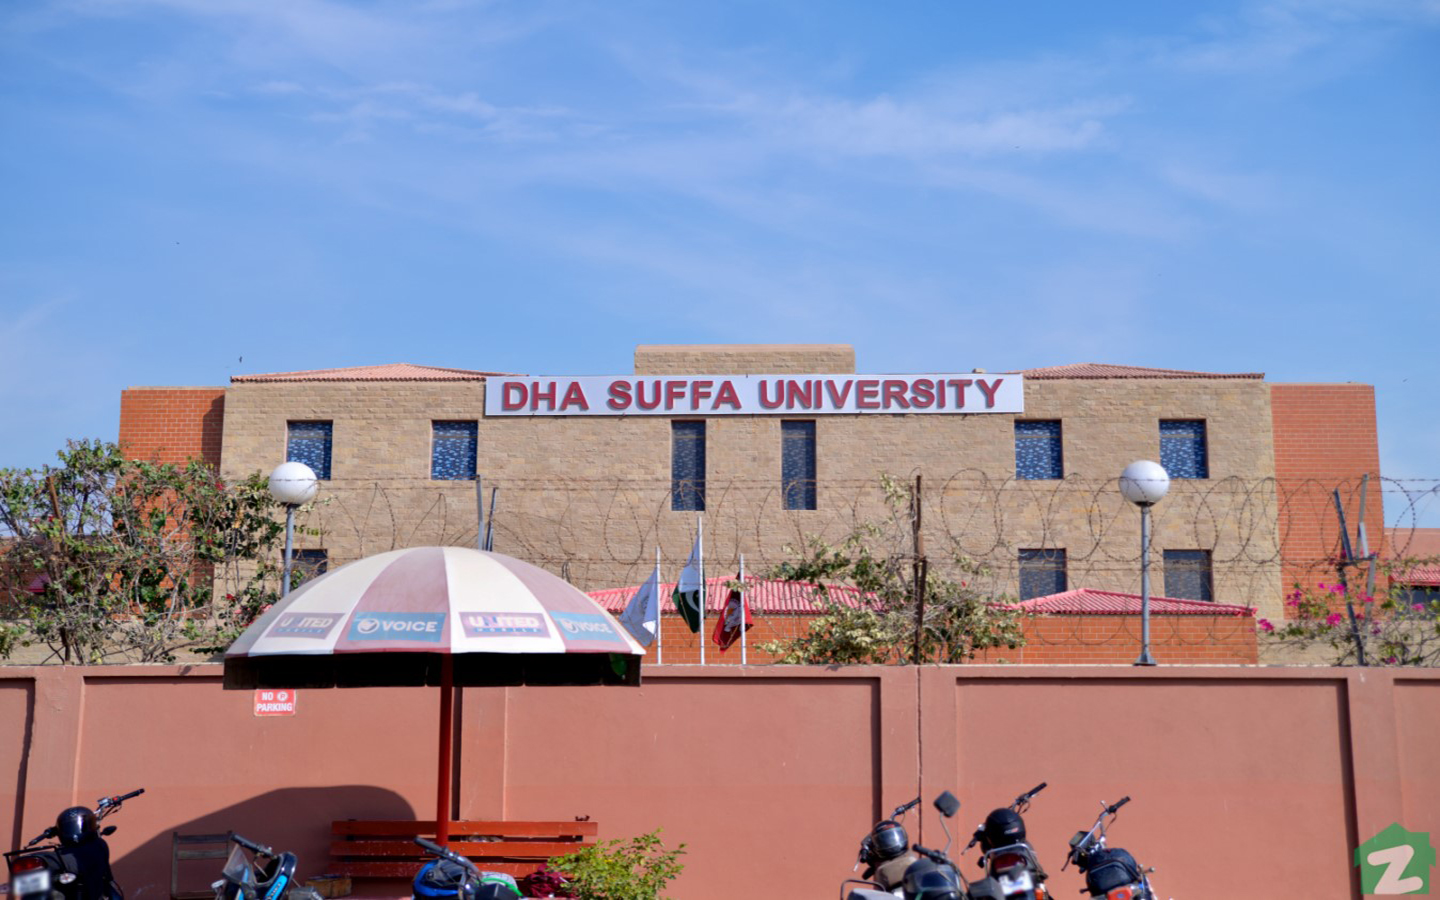 DHA Suffa University is one of the most well-reputed higher education institute in the country